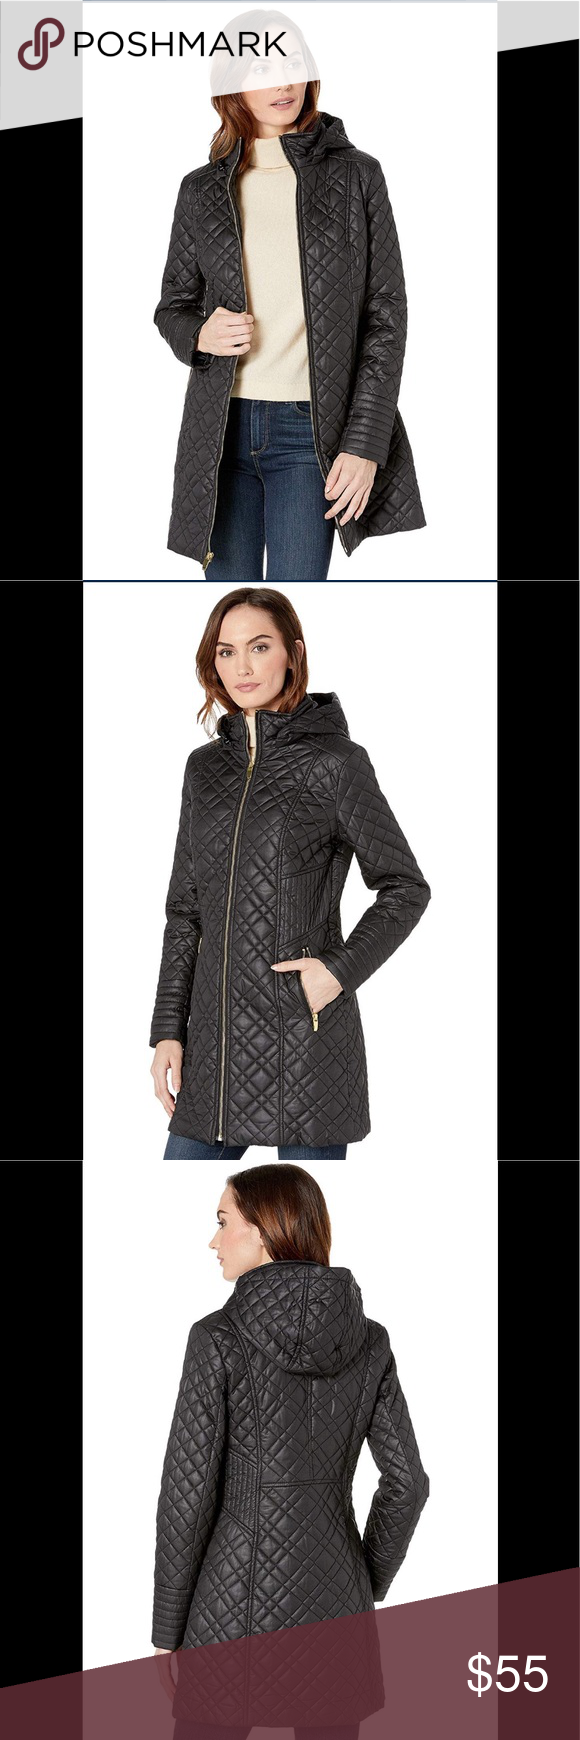 7d6a682d88a Via Spiga Women's Center Zip Diamond Quilt black Description Hooded stand  collar center zip diamond quilt with tassel zip Features & details 100%  Polyester ...